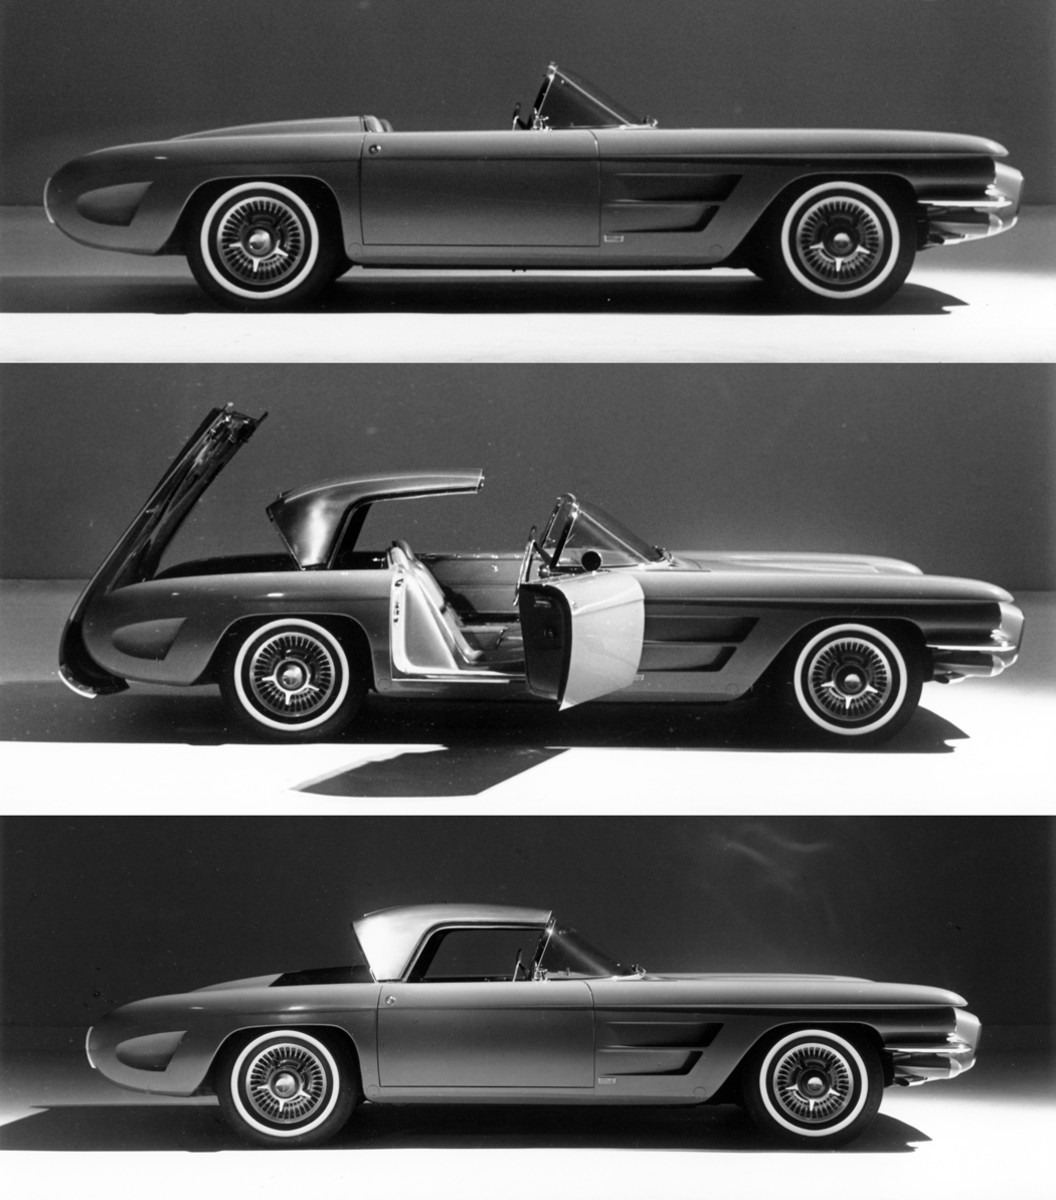 A convertible top fully hidden under a pivoting panel was a hallmark of the concept cars designed under Harley Earl. The top for the F-88-III was of stainless steel. Note the headrest fairings on the deck of the car.